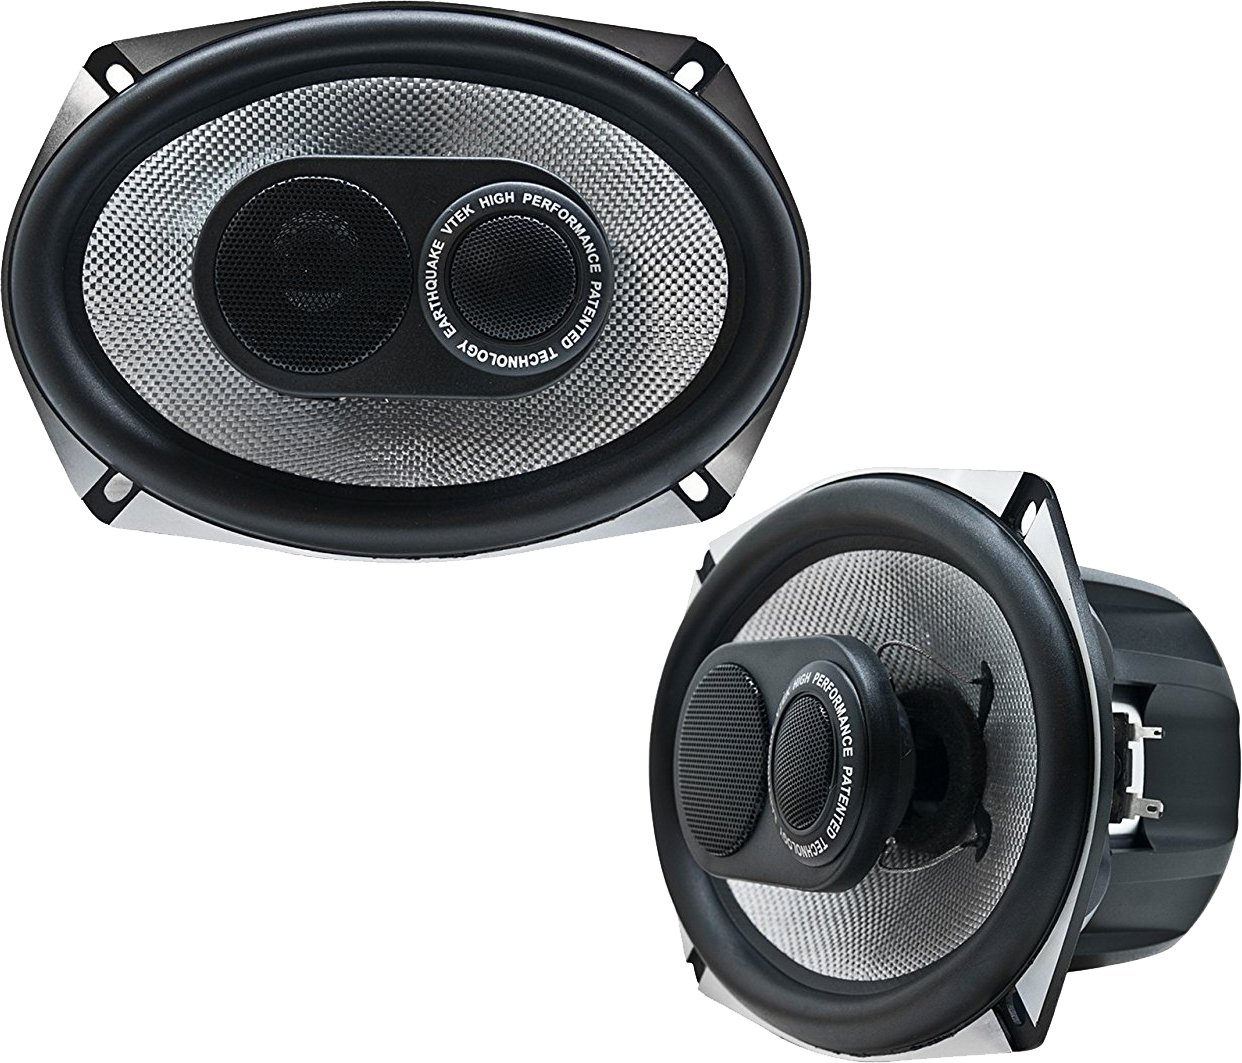 Earthquake Sound VTEK-693 6x9-inch 3-Way Coaxial Speakers with PistonMax Technology (Pair)